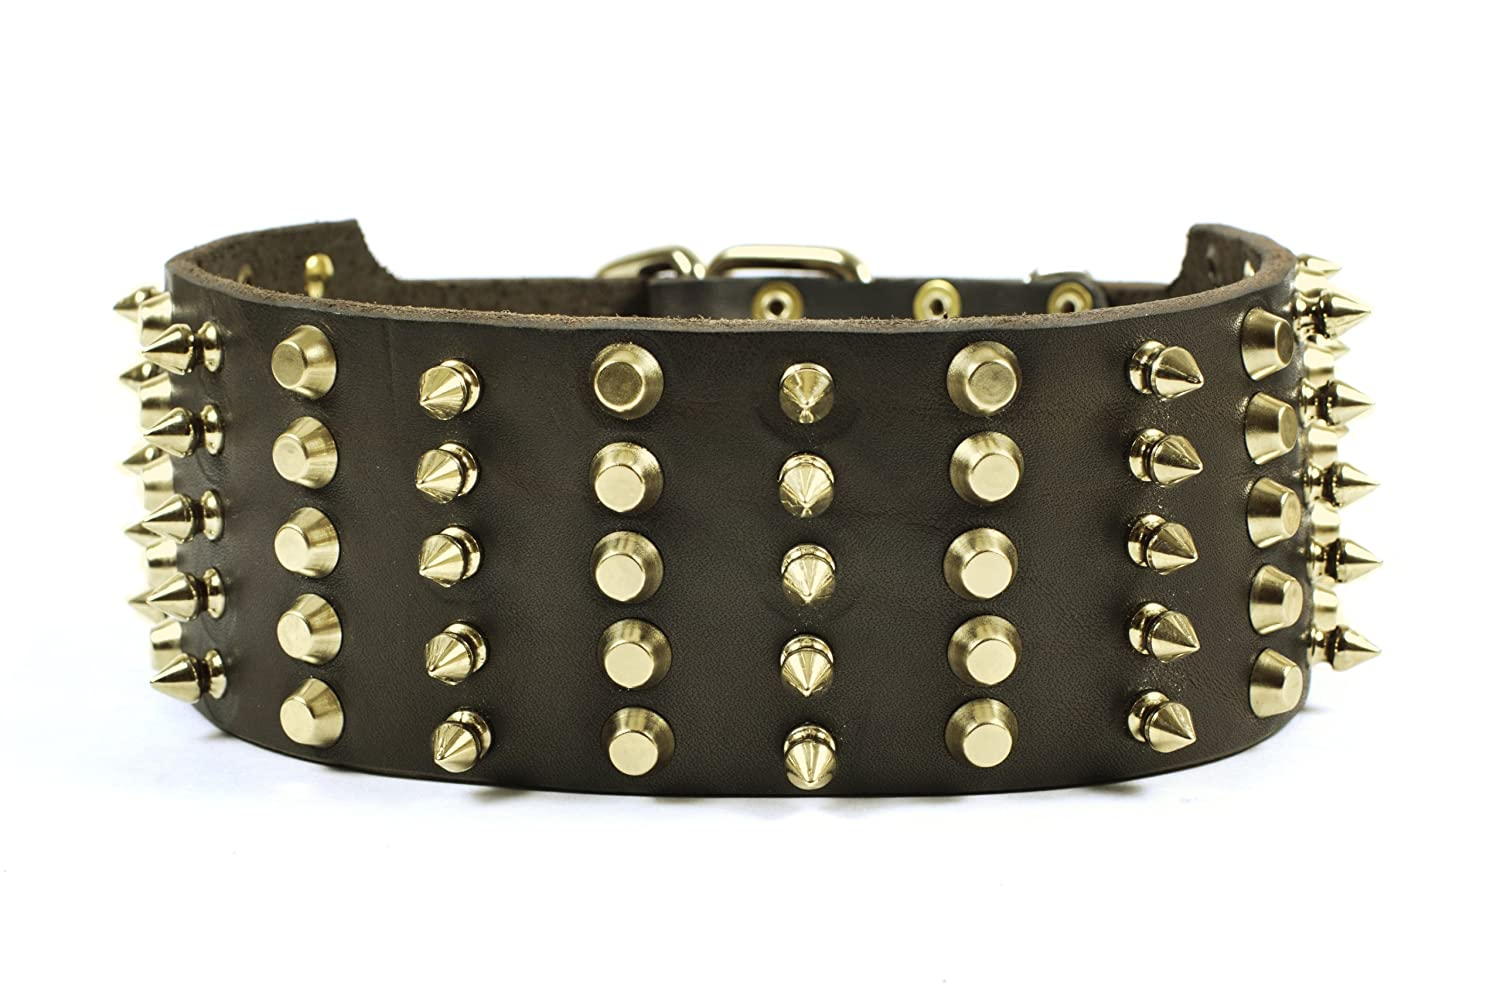 Dean & Tyler Leather Dog Collar  Wide Heaven  Brown 51cm By 7cm Width. Will Fit Neck Size 46cm 56cm. It Has Spikes Made of Brass. High Quality Leather From Netherlands.